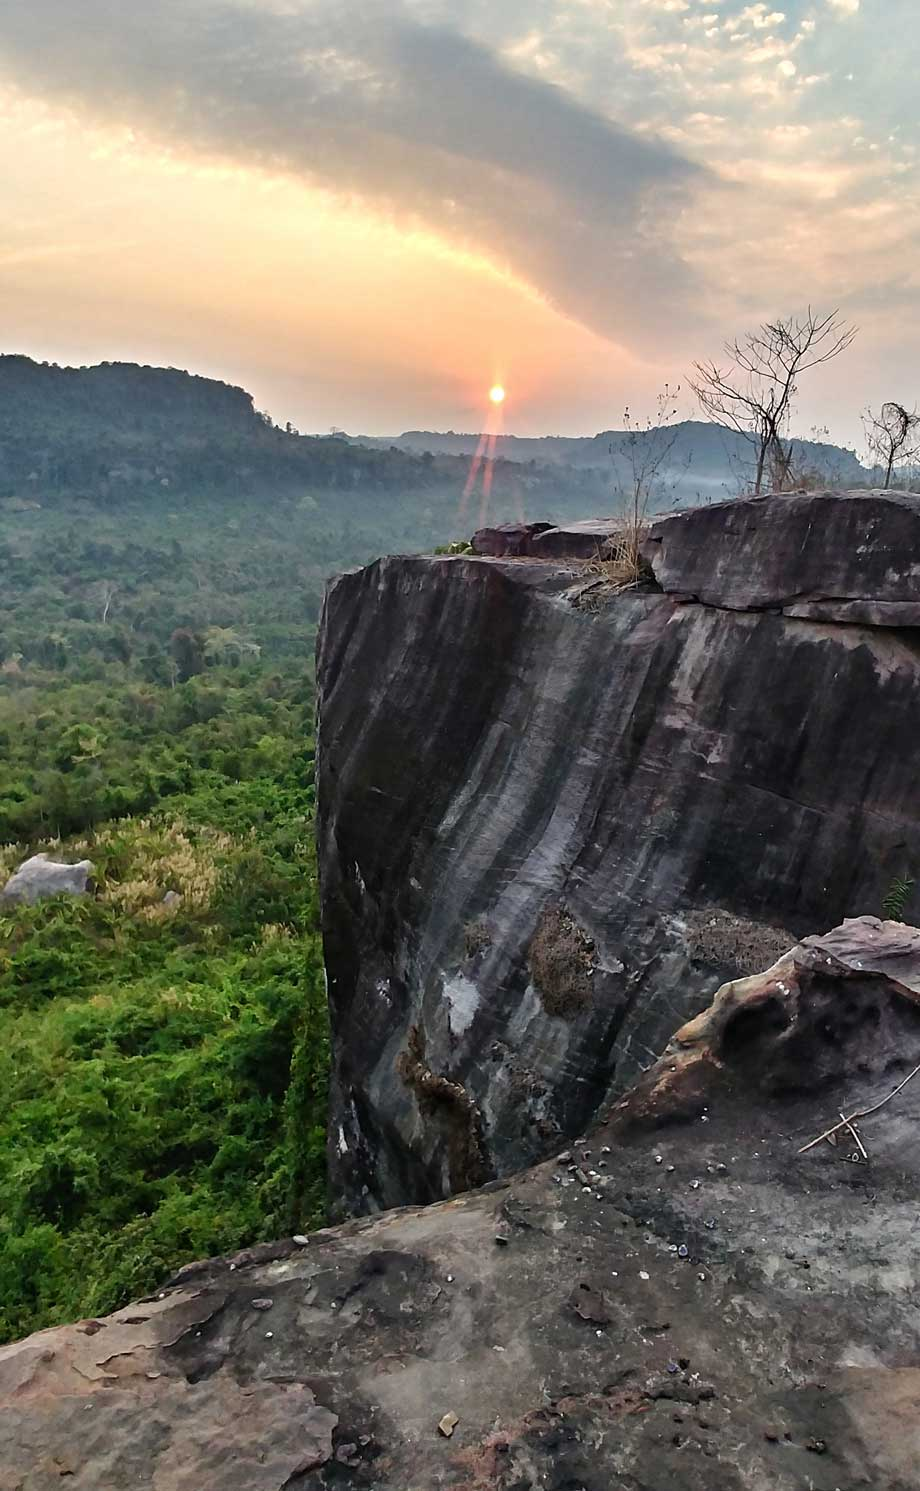 View from the Kulen mountain on rising sun